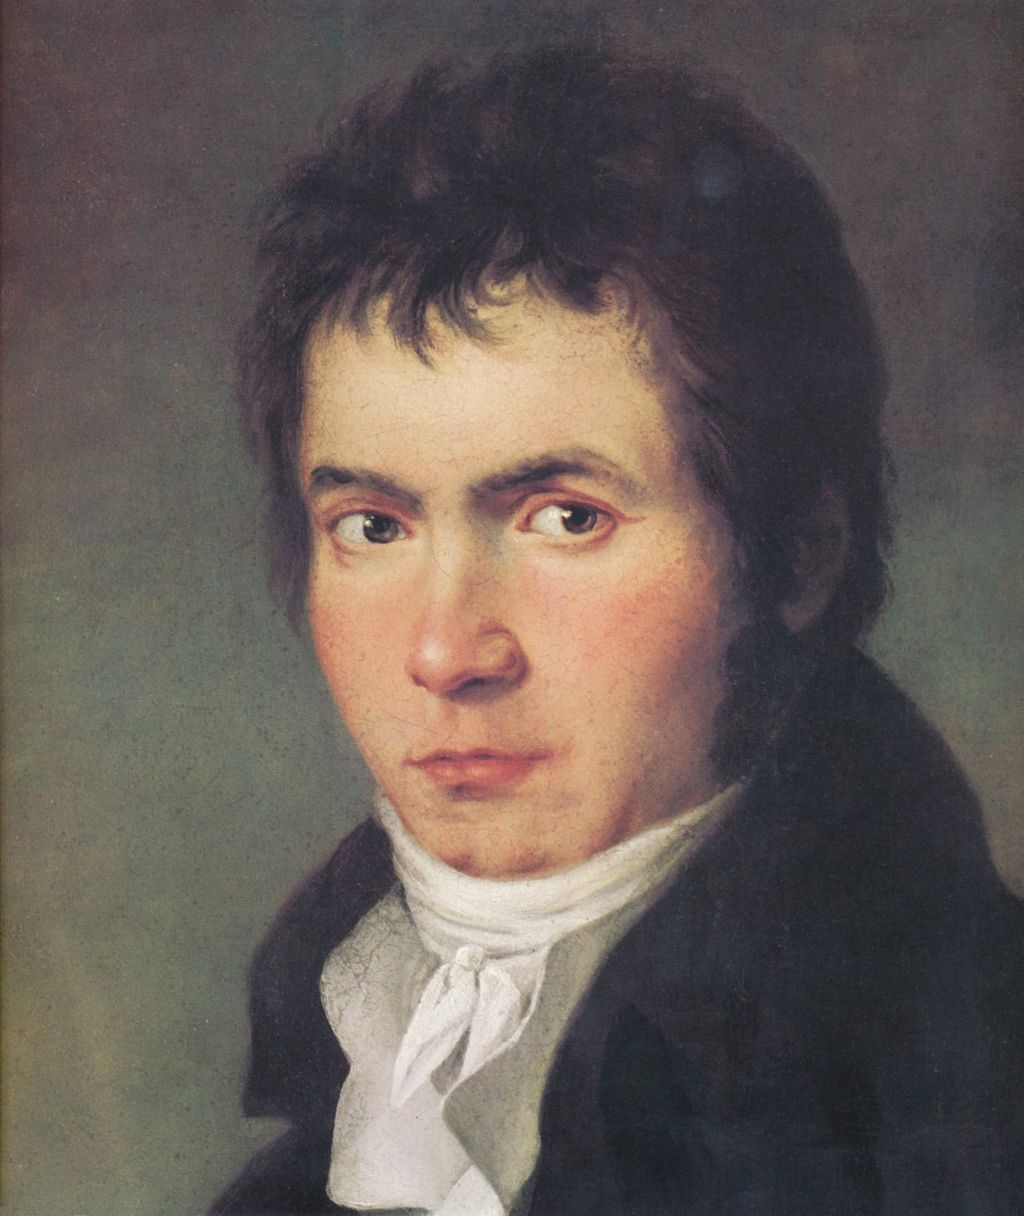 a biography and life work of ludwig von beethoven a german composer Here are 10 unknown and interesting facts about ludwig van beethoven that  here are 10 interesting facts about ludwig van  of his life, beethoven's temper had.